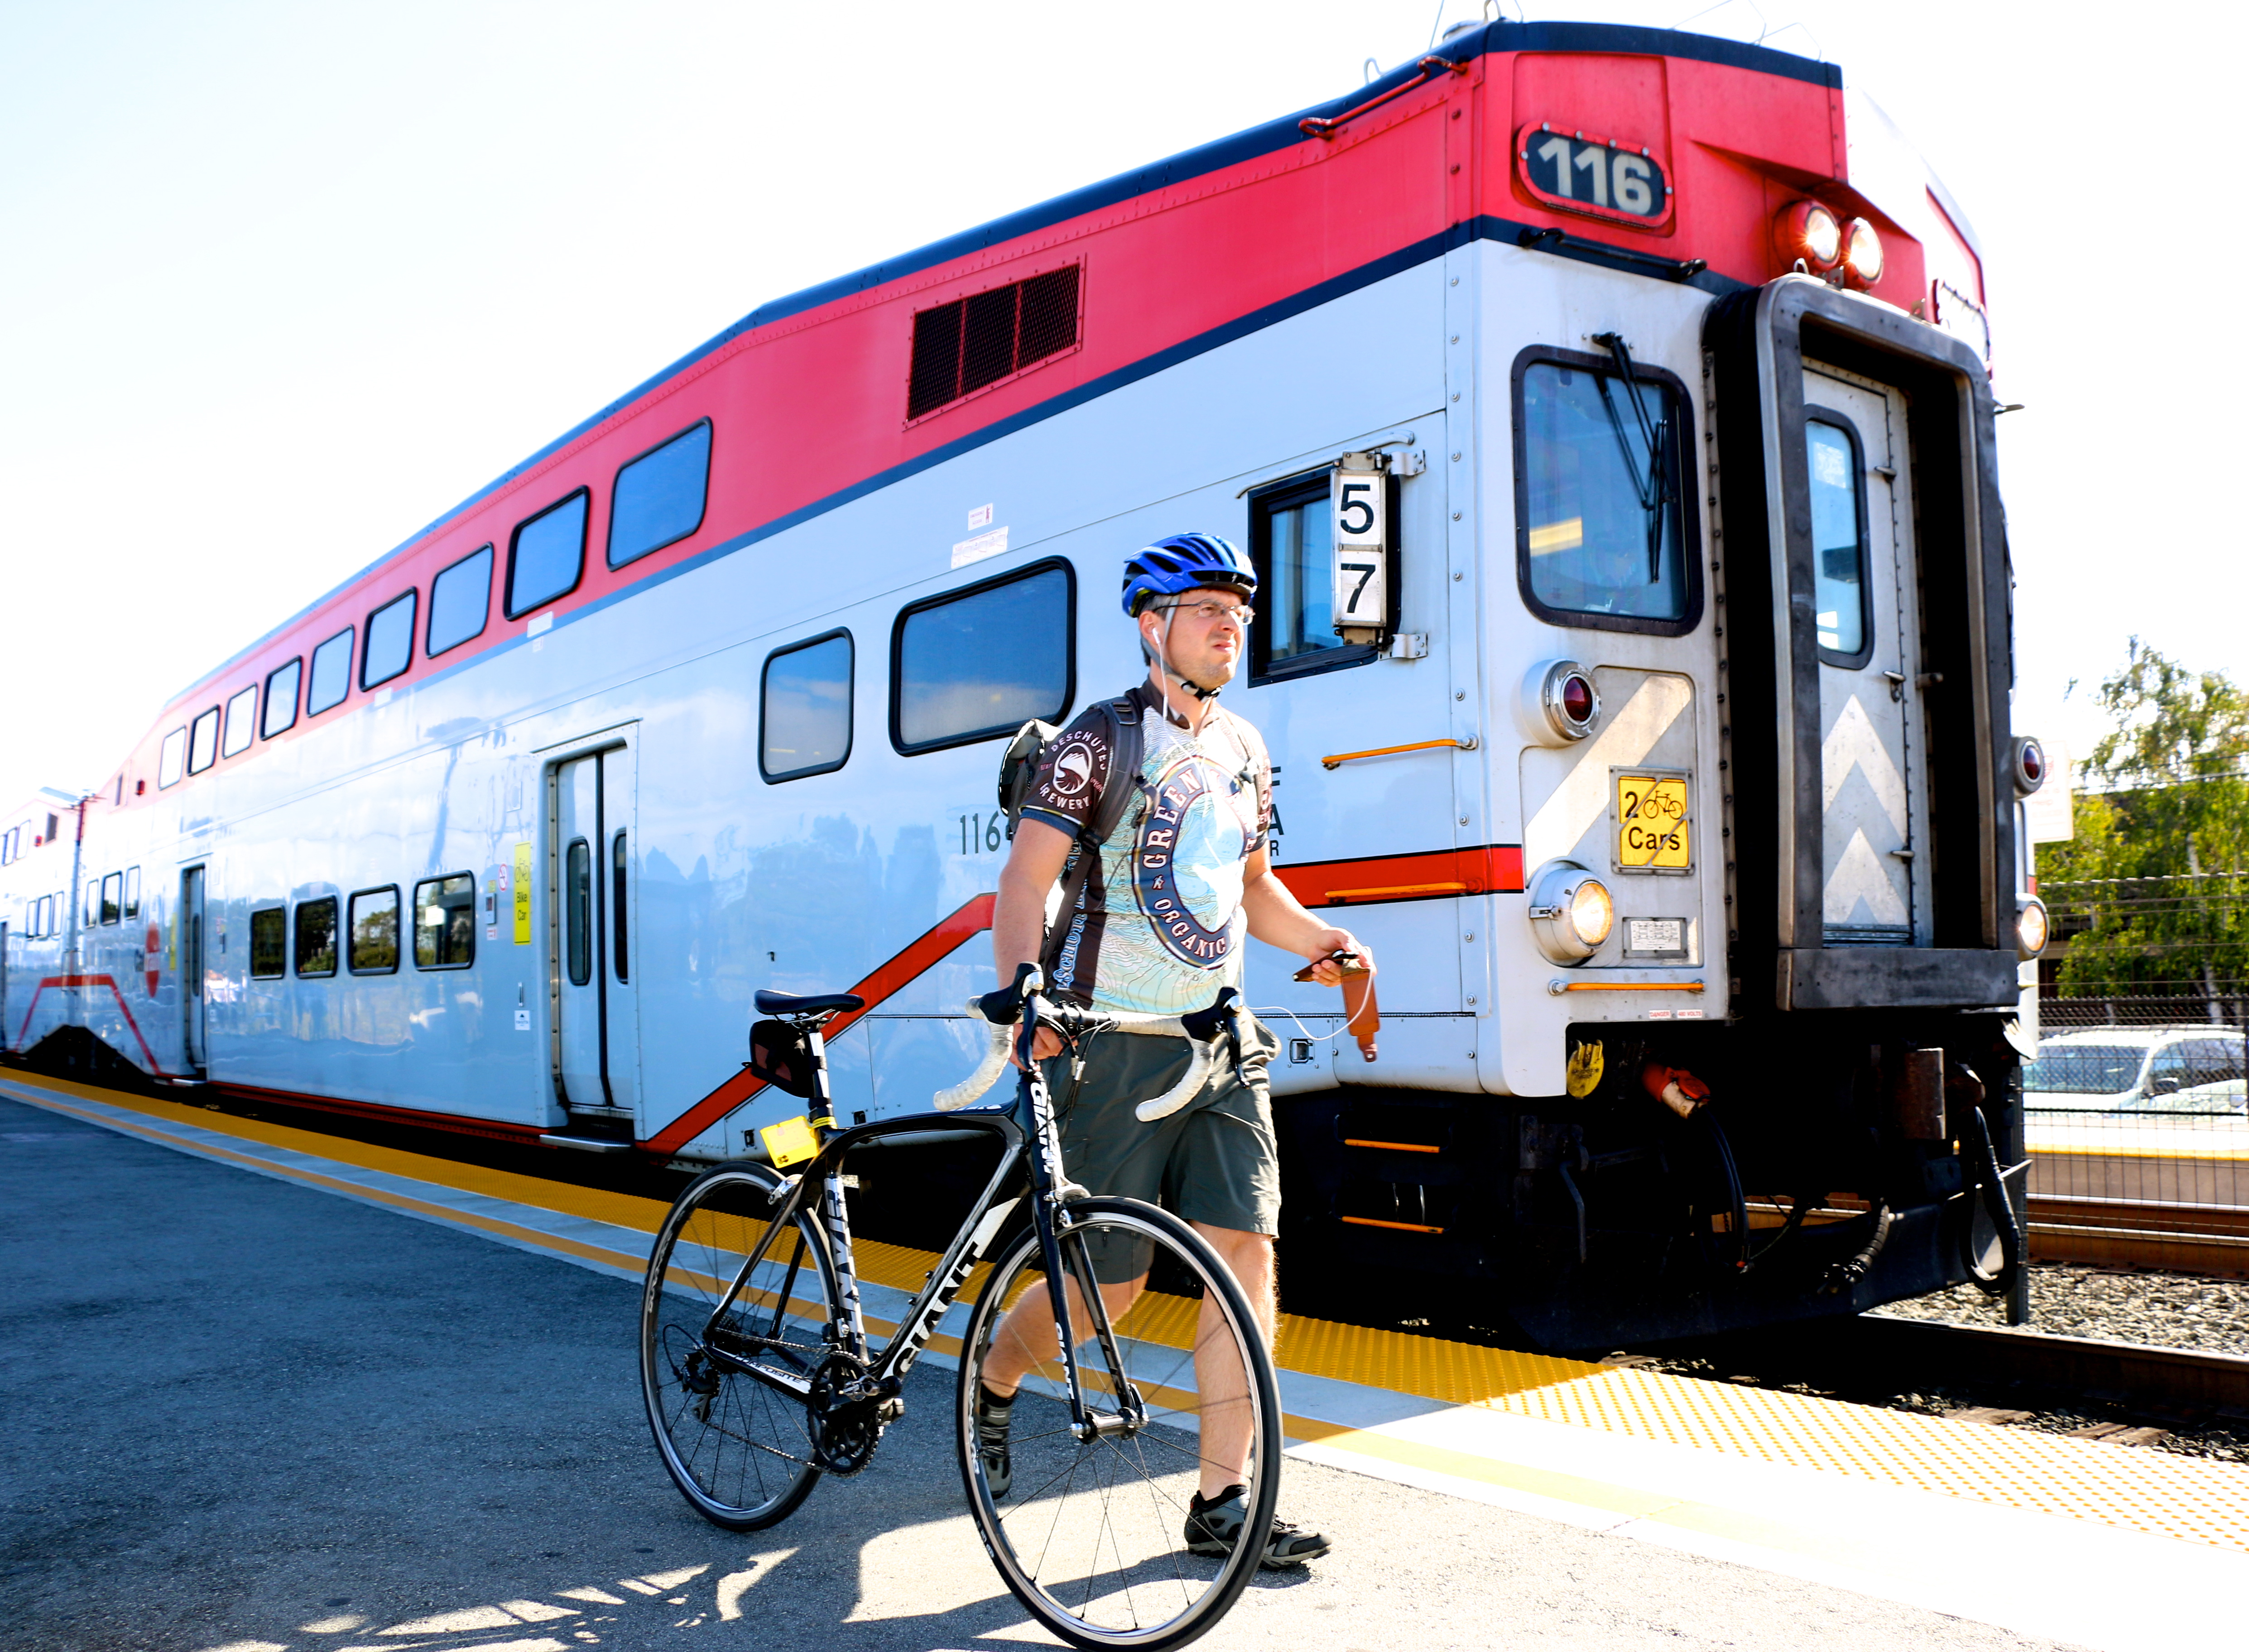 Bike commuters on Caltrain -- boasting the most extensive bicycle access program among passenger railroads in the nation -- have reached an all-time high.